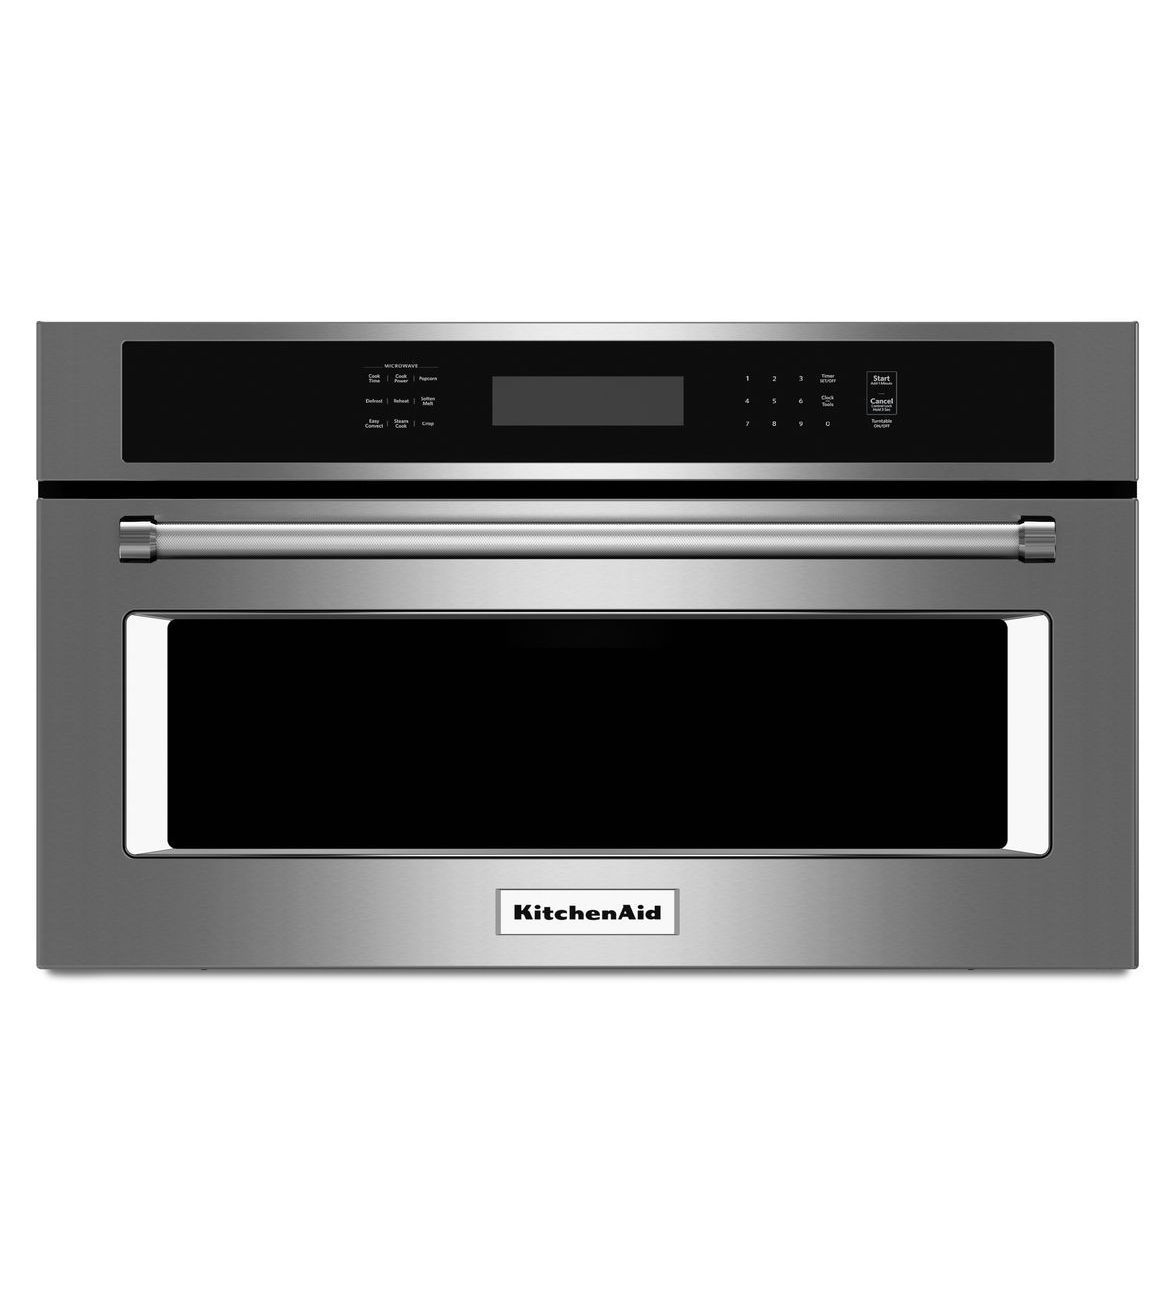 Learn About Features And Specifications For The KitchenAid KitchenAid®  Built In Microwave Oven With Convection Cooking Stainless Steel)